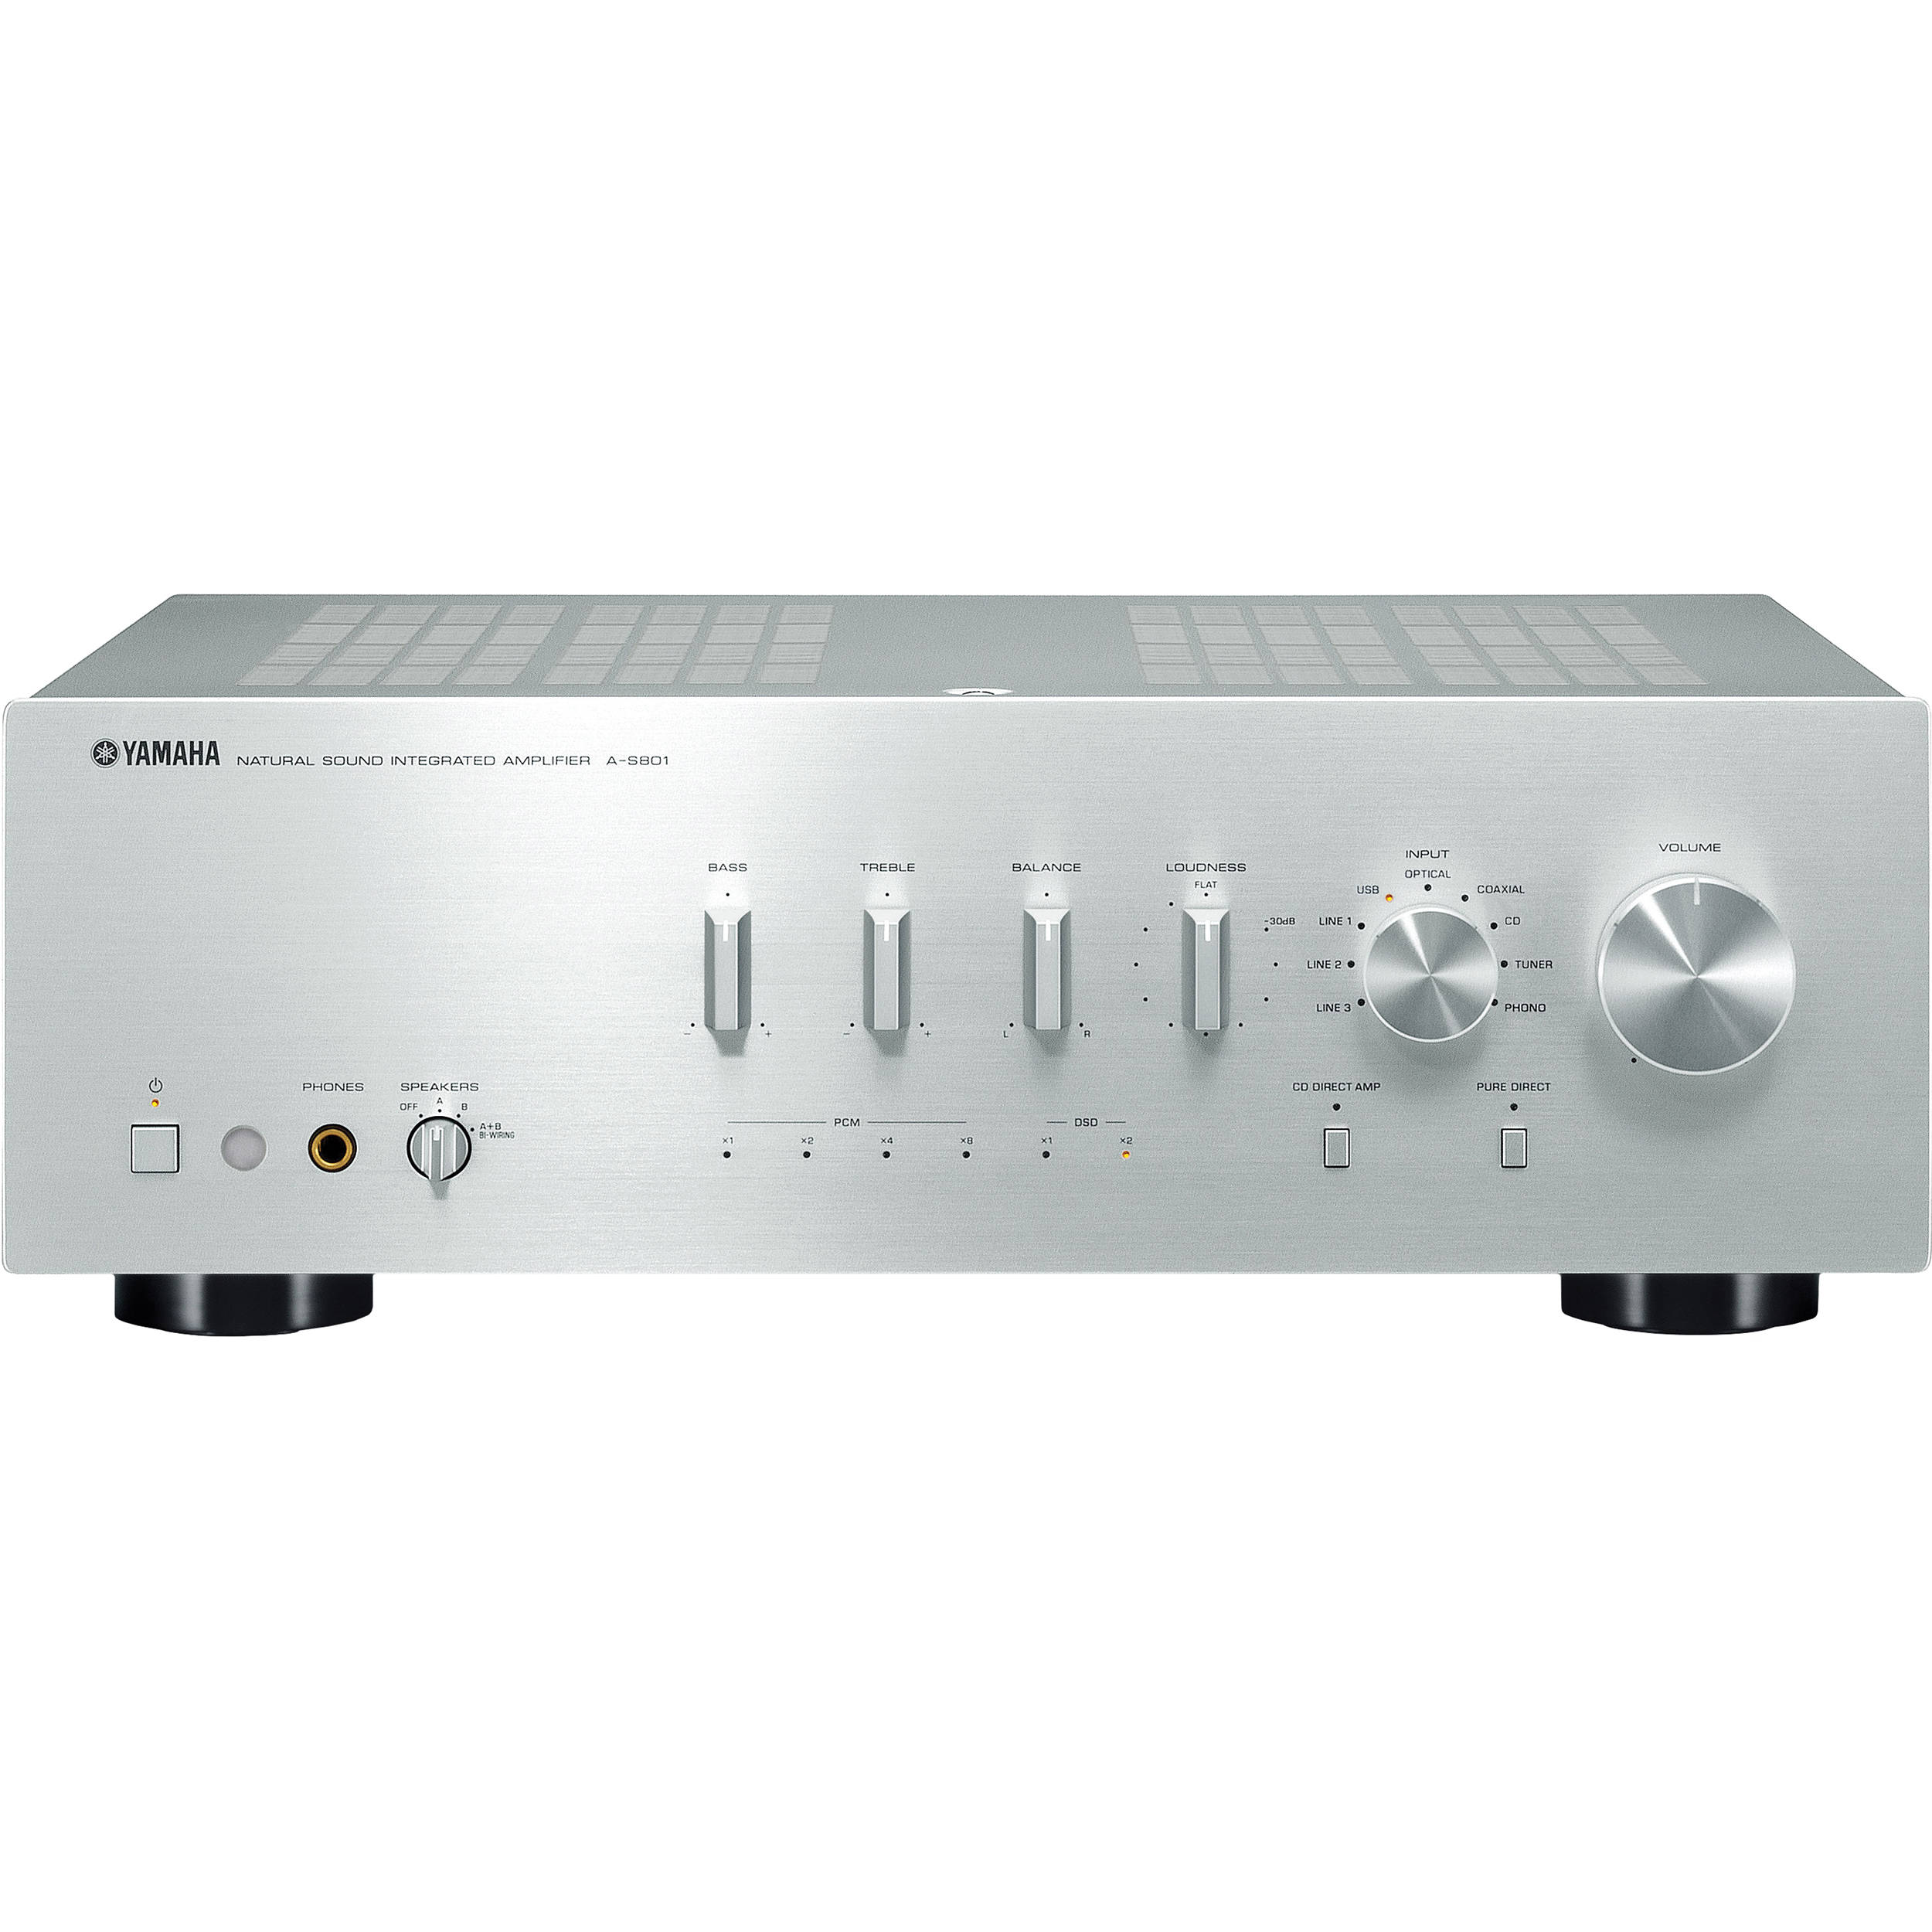 Yamaha Power Amplifiers Bh Photo Video How To Build Symmetrical Class A Preamplifier S801 Integrated Amplifier Silver